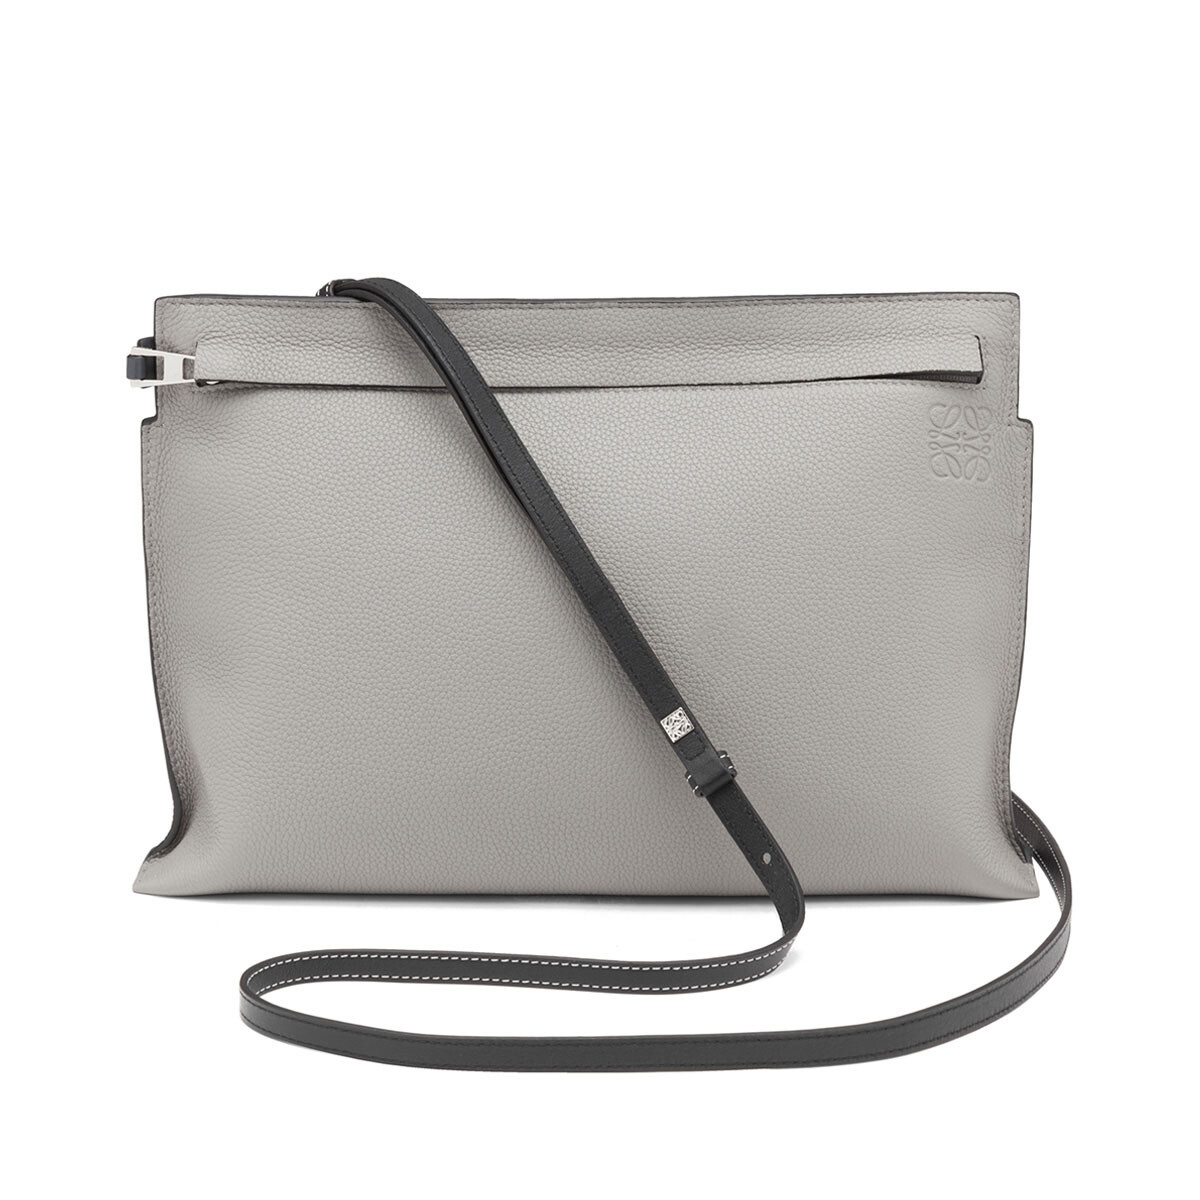 LOEWE T Pouch Bag Smoke Grey/Anthracite front